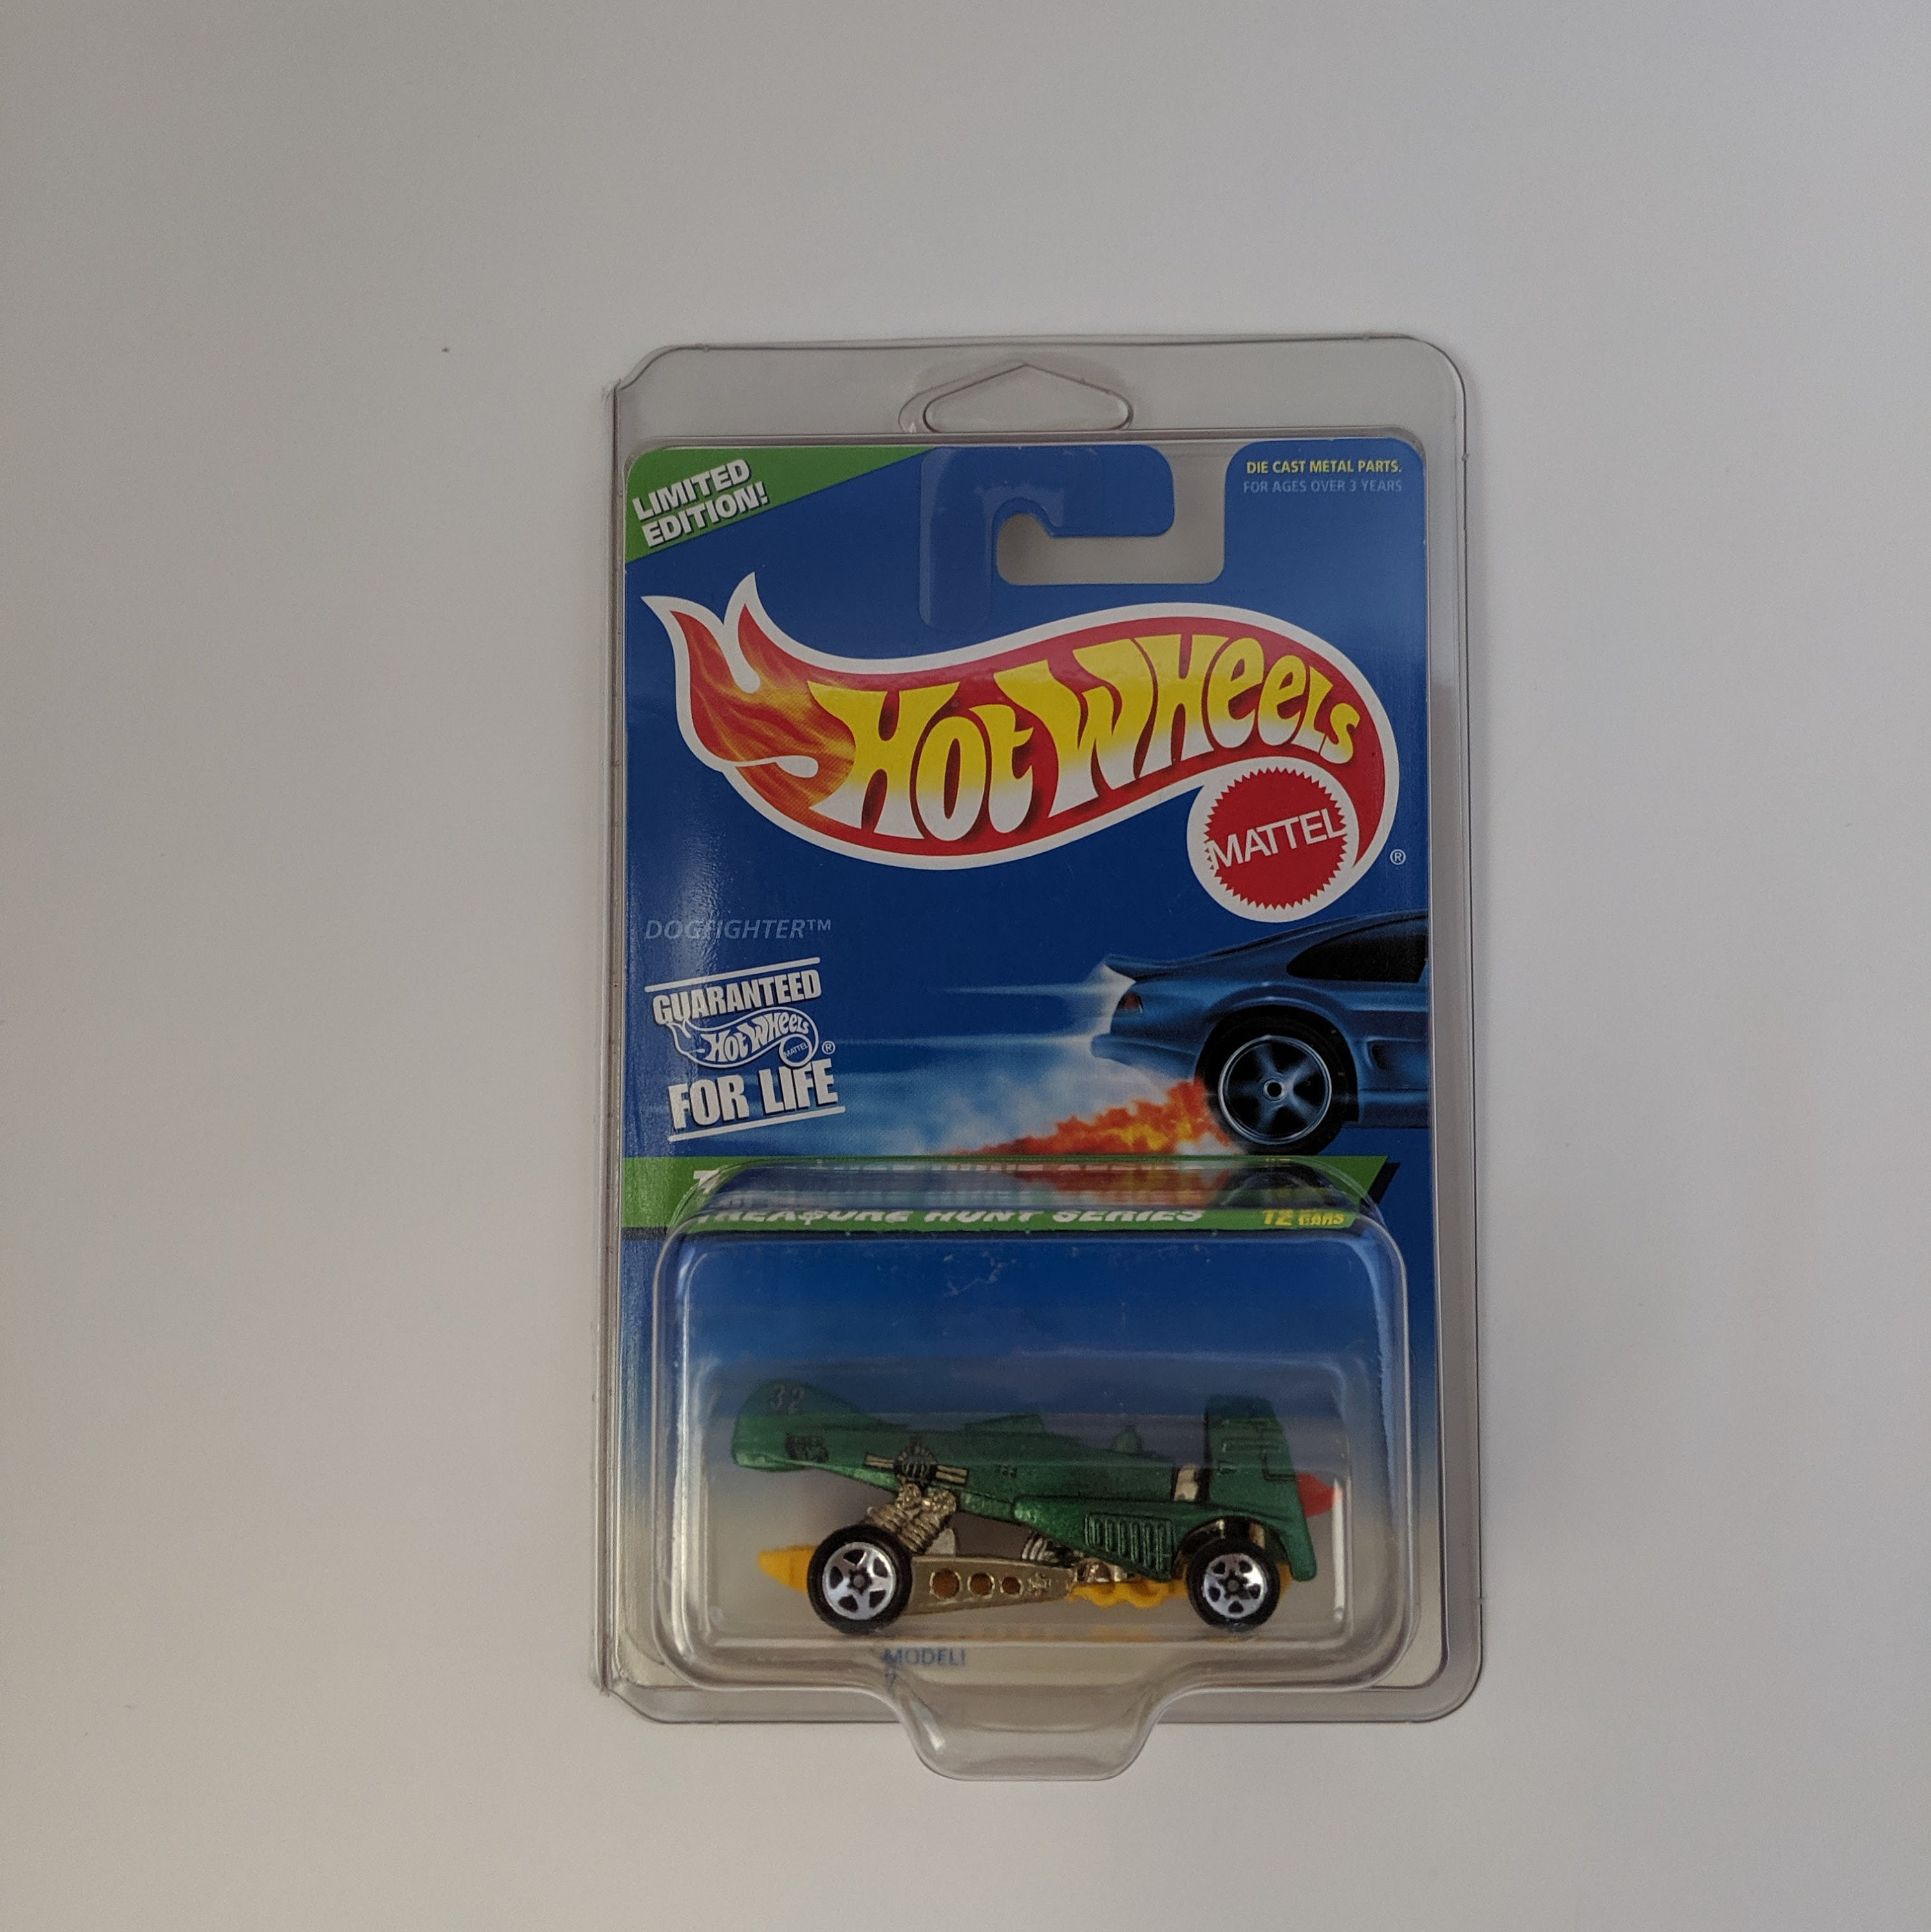 1997 Hot Wheels Treasure Hunt Series Dogfighter #8 of #12 w//Protective Case